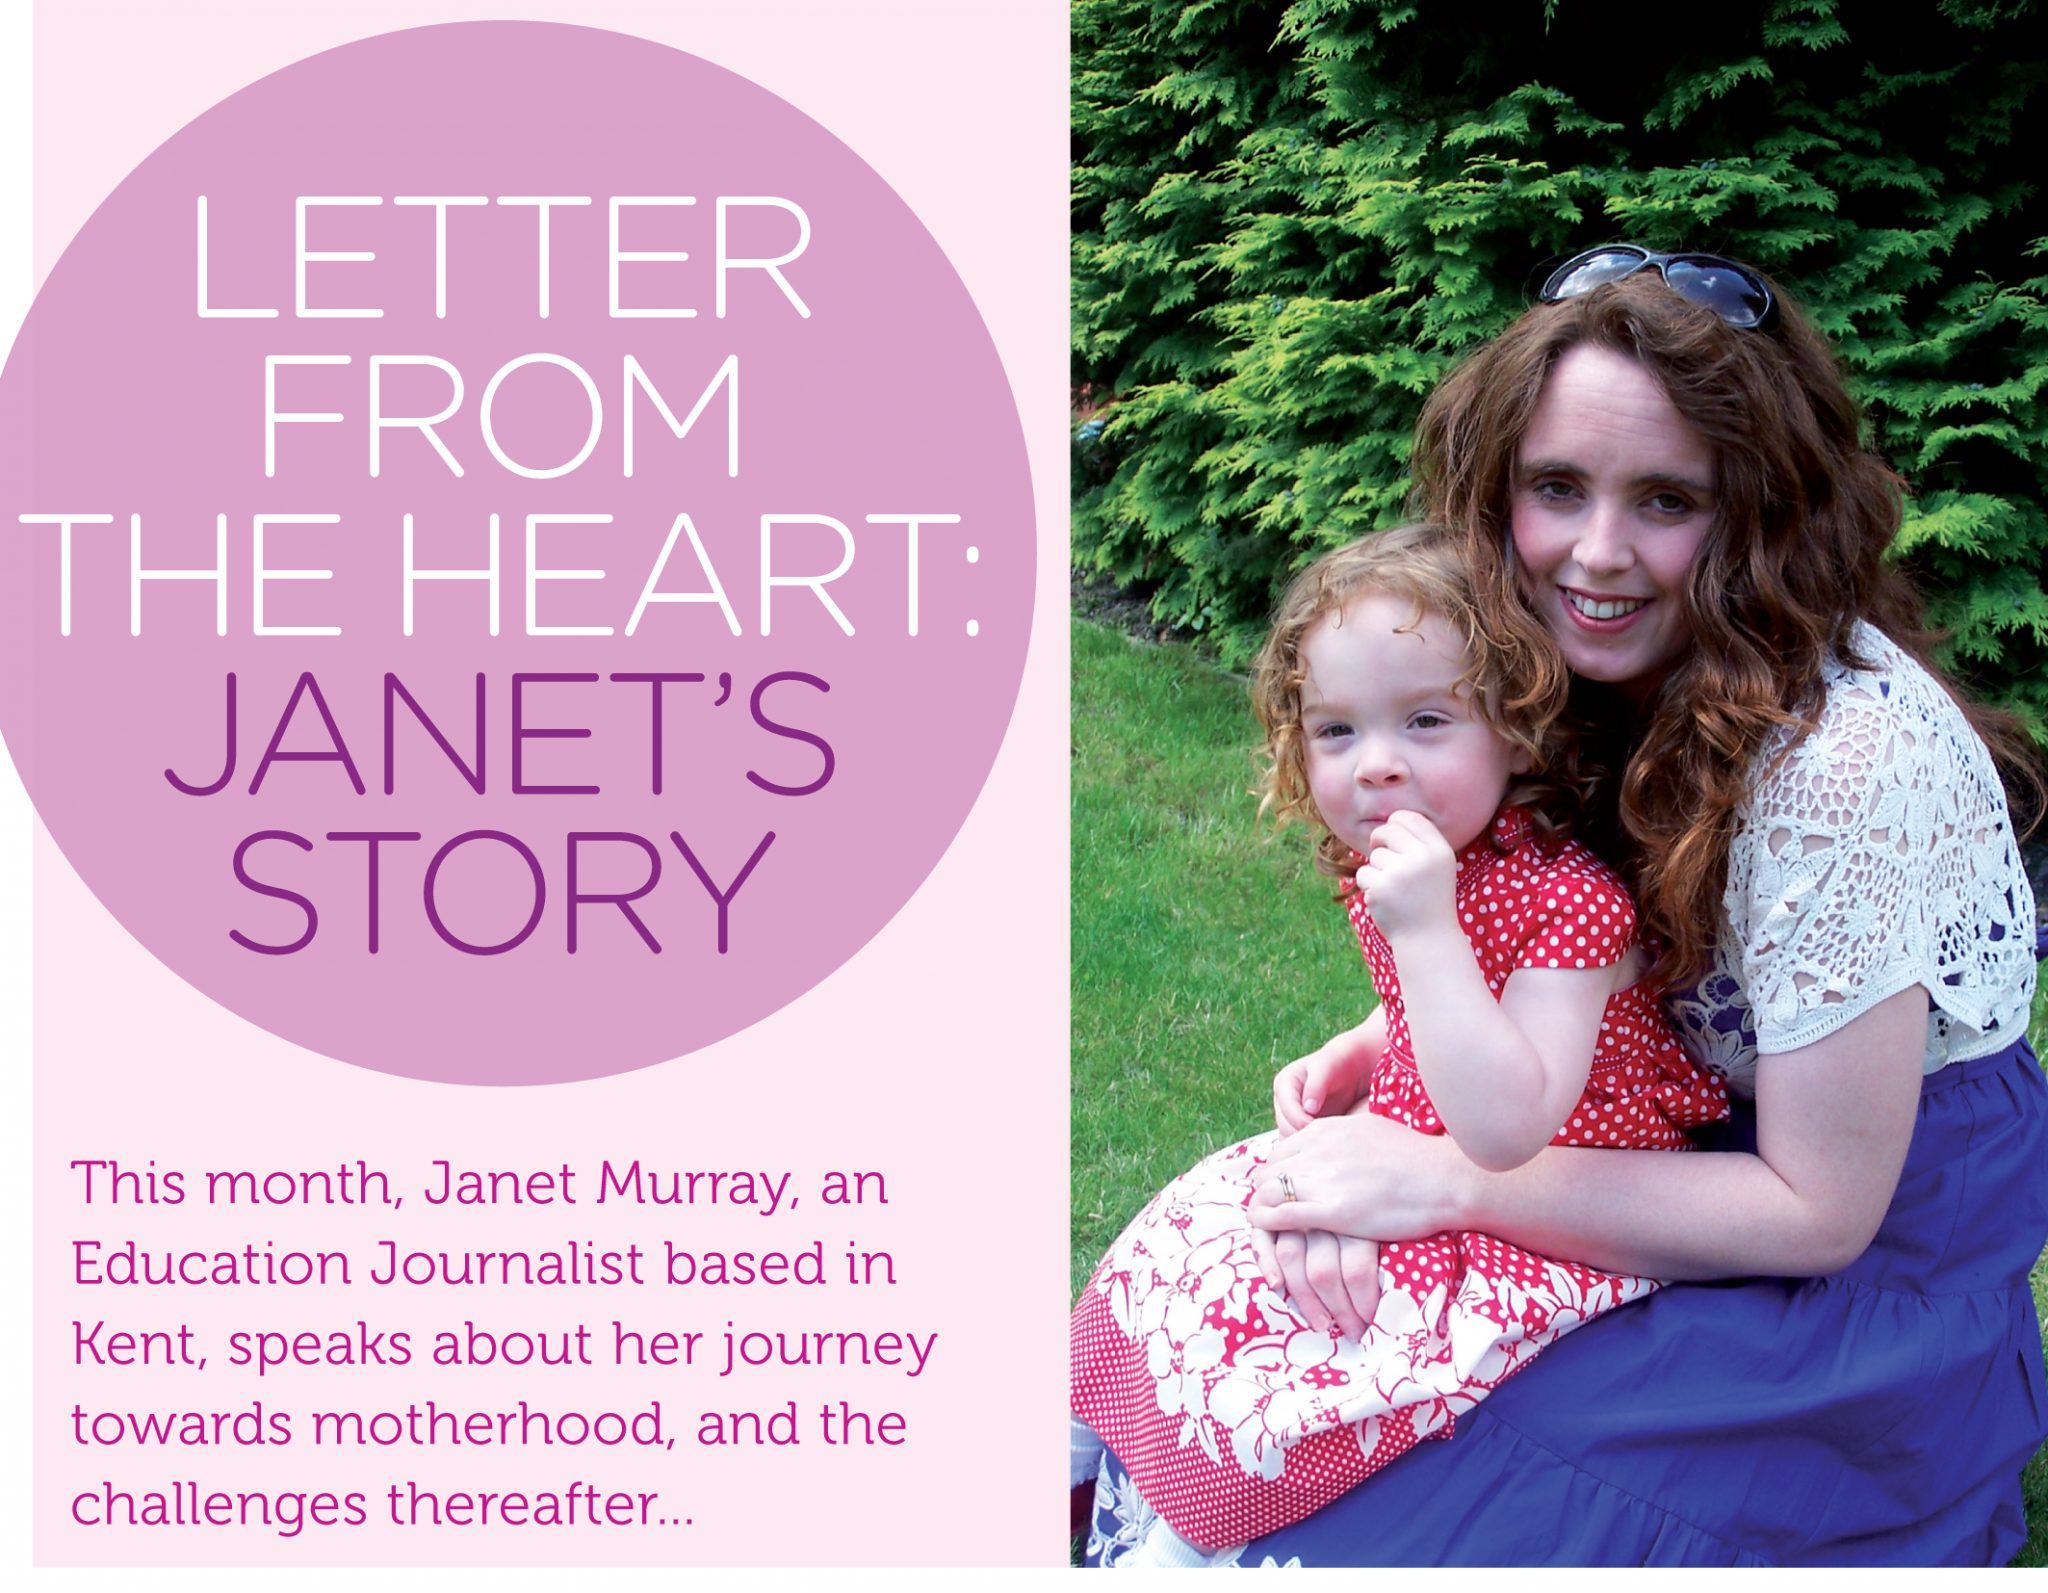 Fertility-Road-Magazine-Letter-From-The-Heart-Janets-story